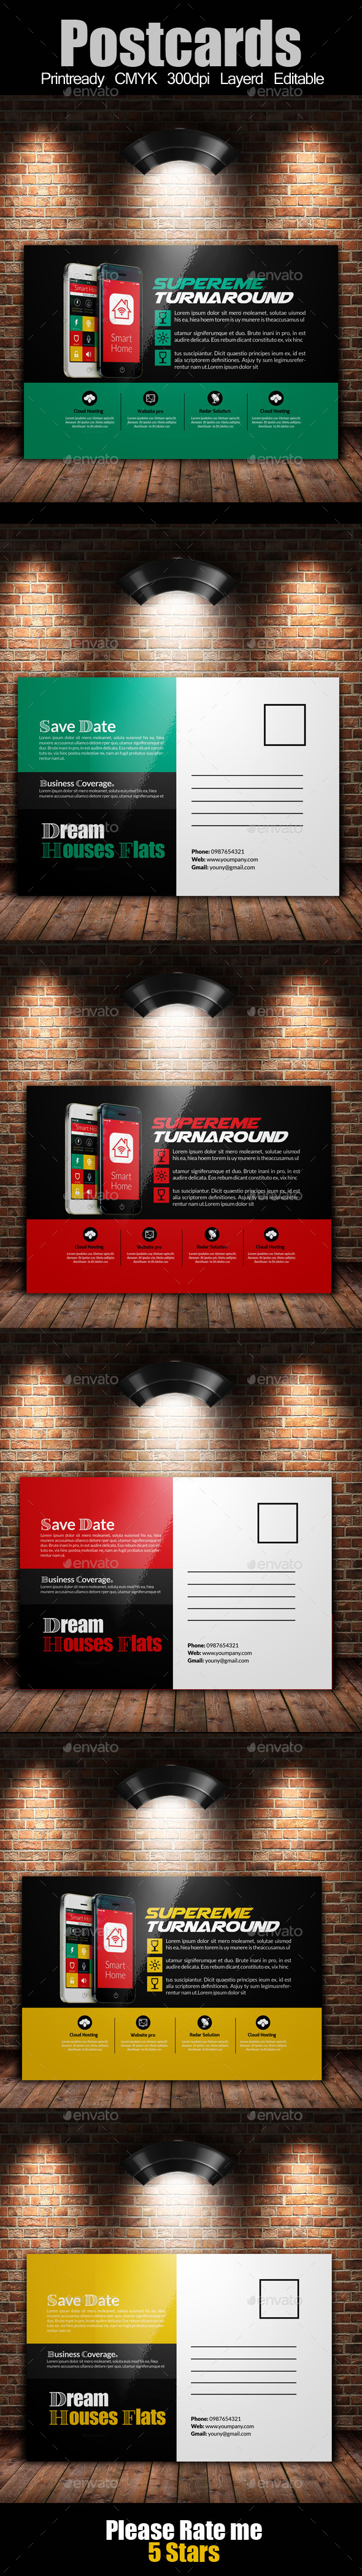 GraphicRiver Mobile App Post Cards Template 10800585